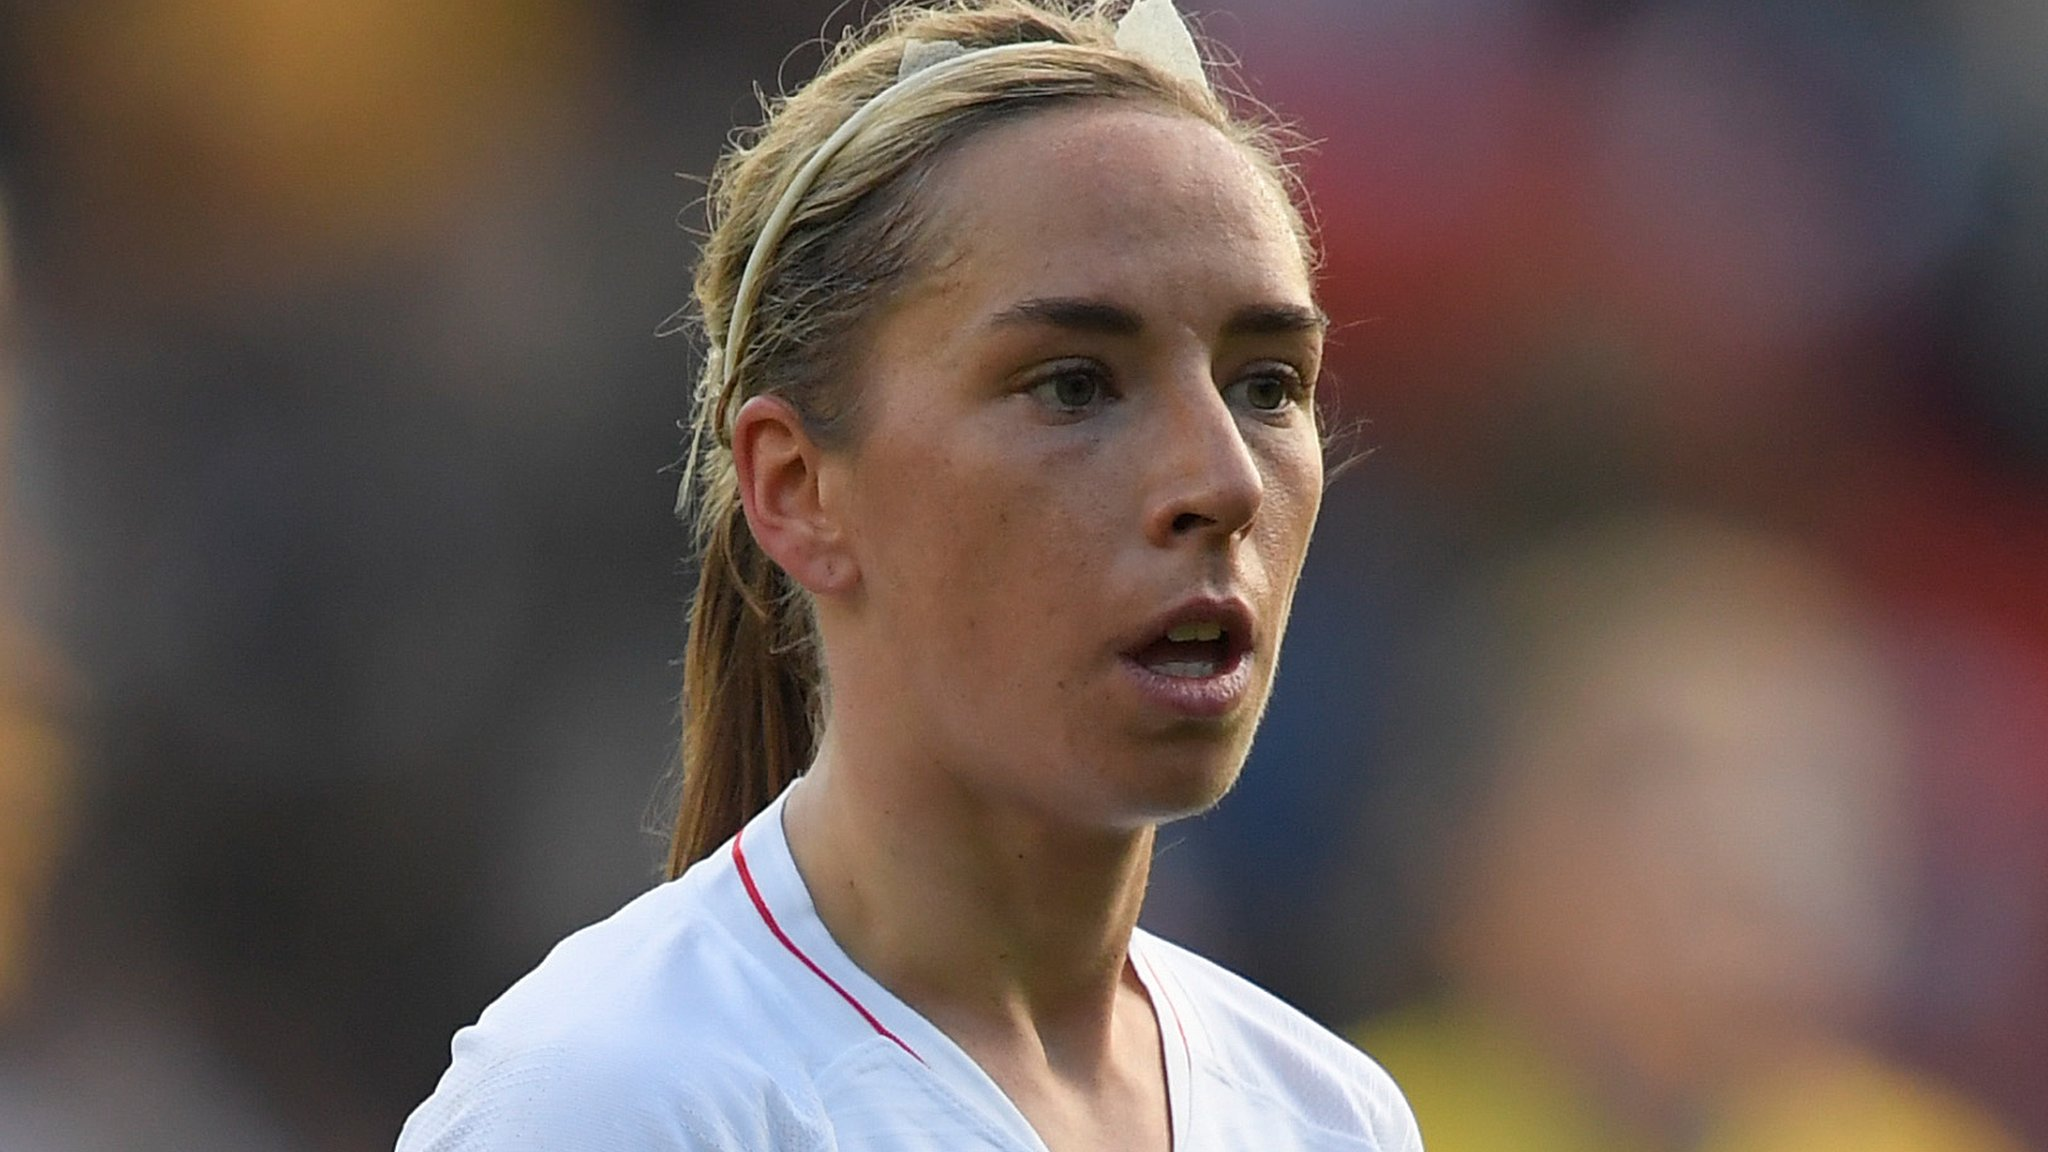 My period was a high factor in knee injury - England's Nobbs